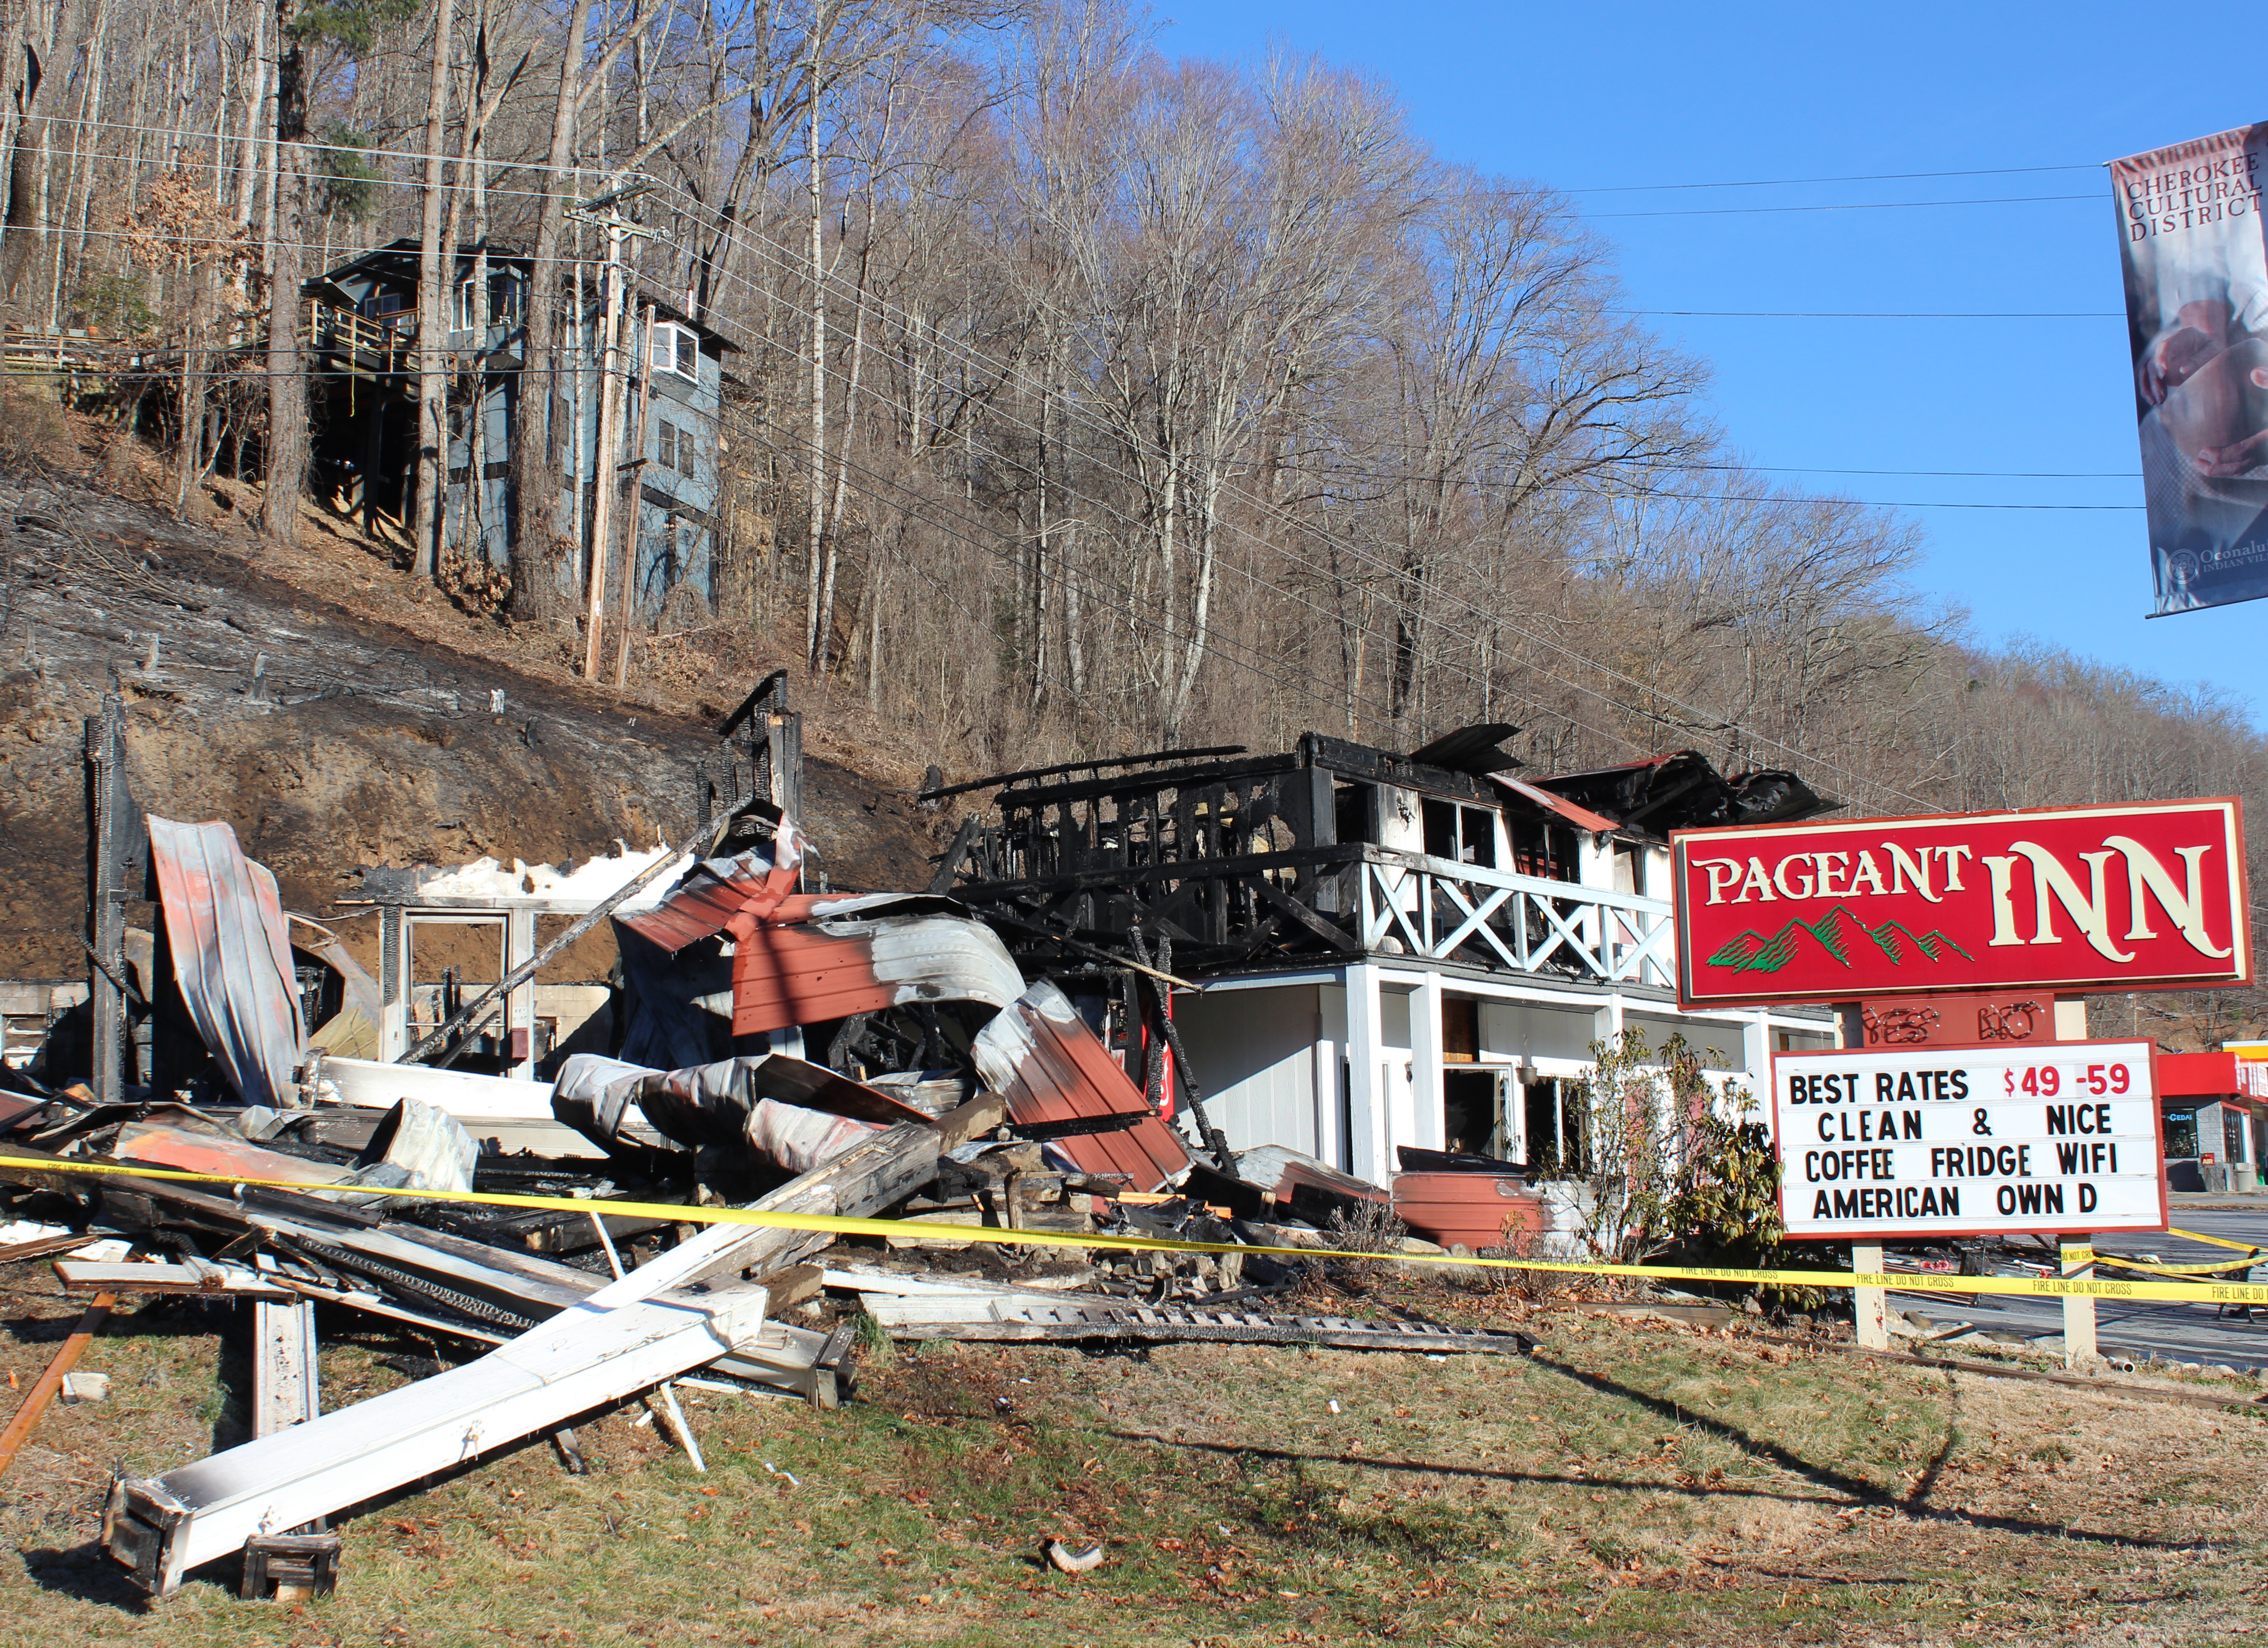 The Pageant Inn was badly damaged in a fire on the night of Thursday, Feb. 27 as shown in this photo taken the morning after.  (AMBLE SMOKER/One Feather)